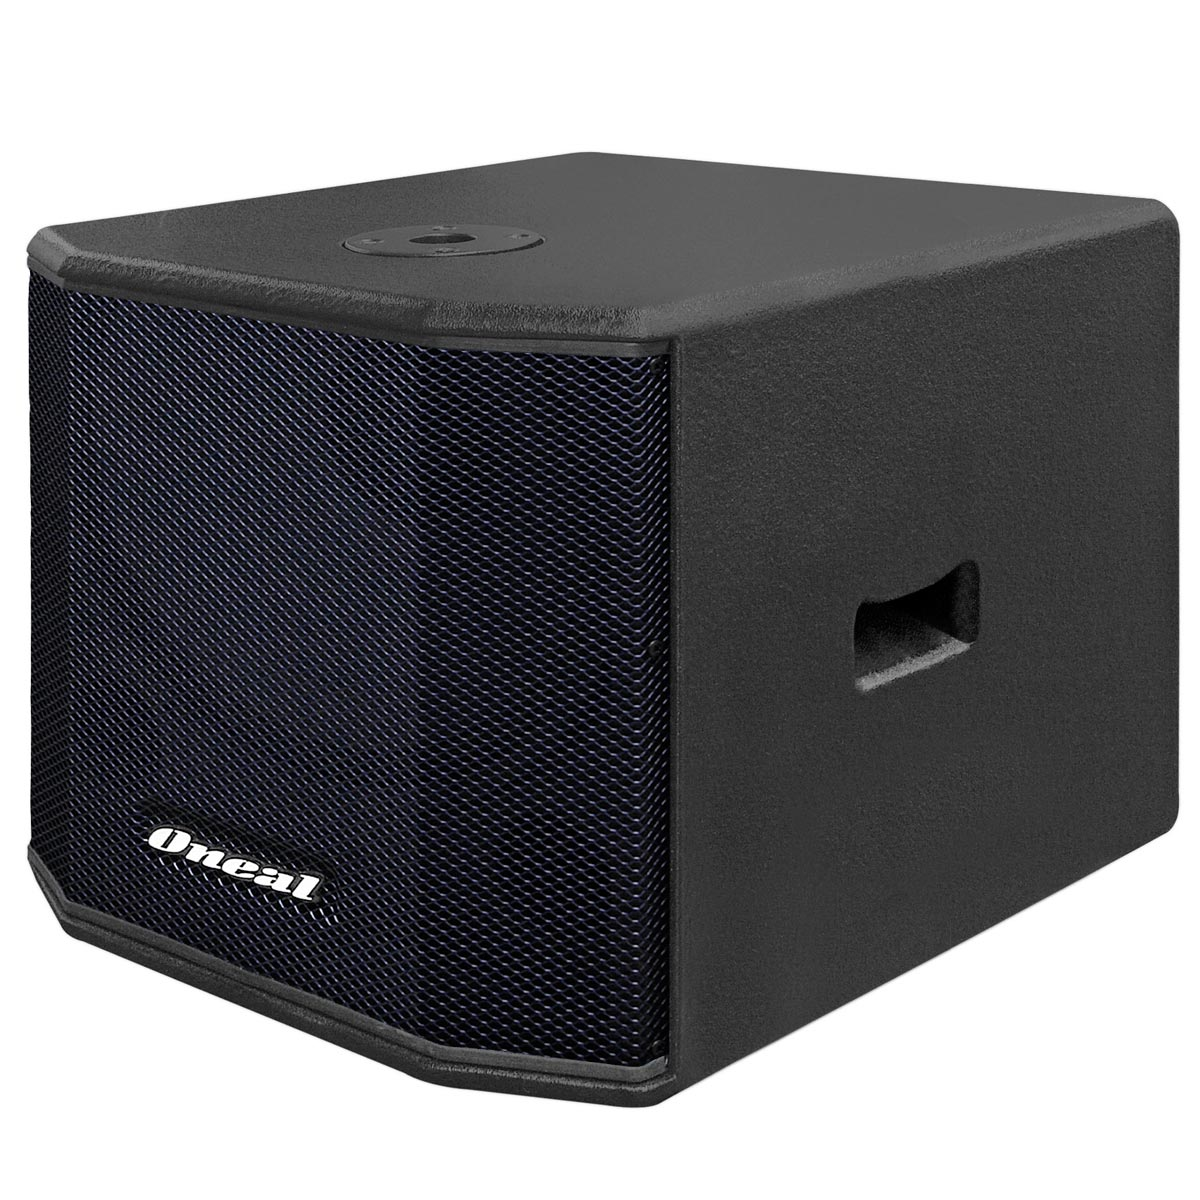 Subwoofer Ativo Fal 12 Pol 550W - OPSB 2200 Oneal